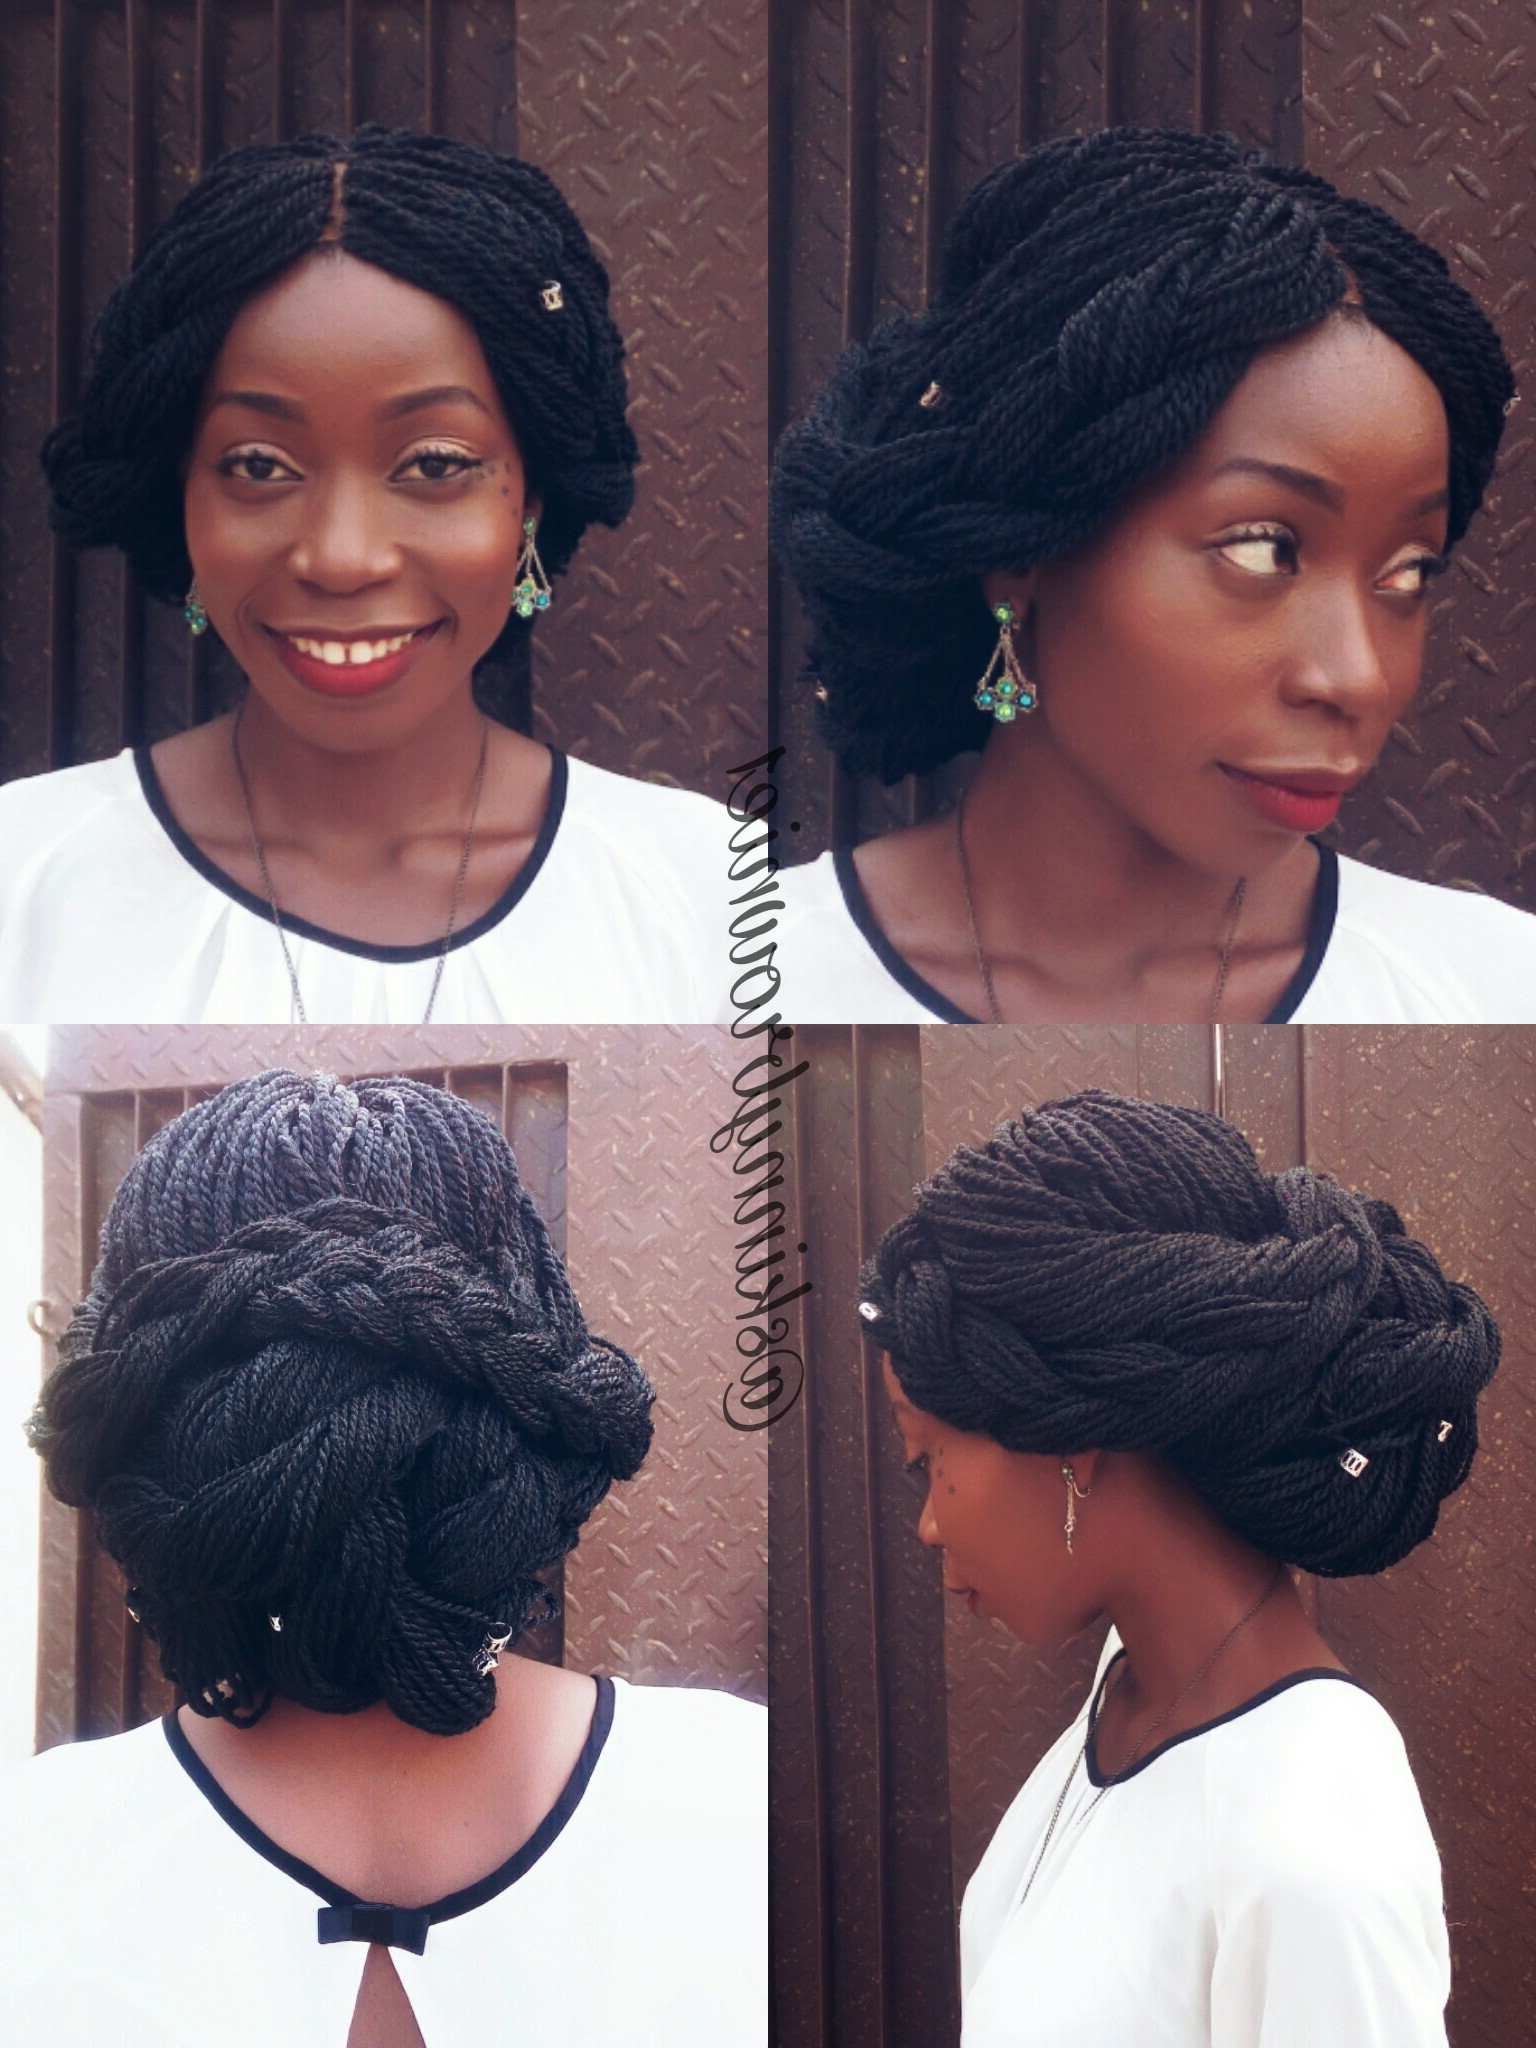 Styling Braid Wigs /box Braids : Seven Beautiful Style Ideas Within Well Liked Wedding Hairstyles With Box Braids (View 14 of 15)